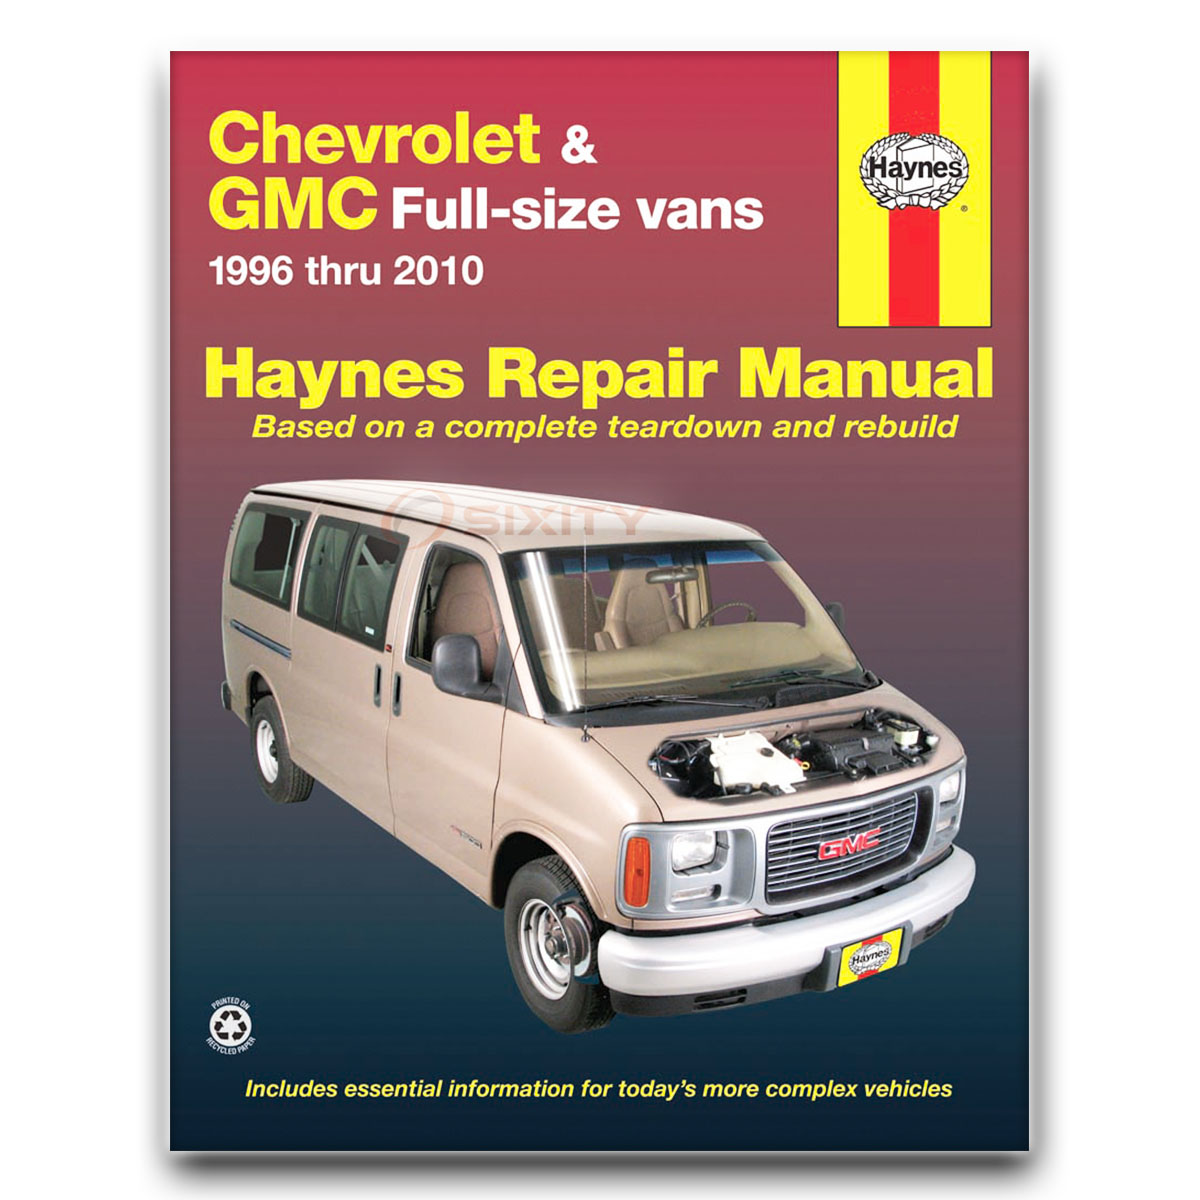 haynes repair manual for chevy express 3500 lt ls base shop service rh ebay  com chevy express 2500 repair manual free chevy express van owner's manual